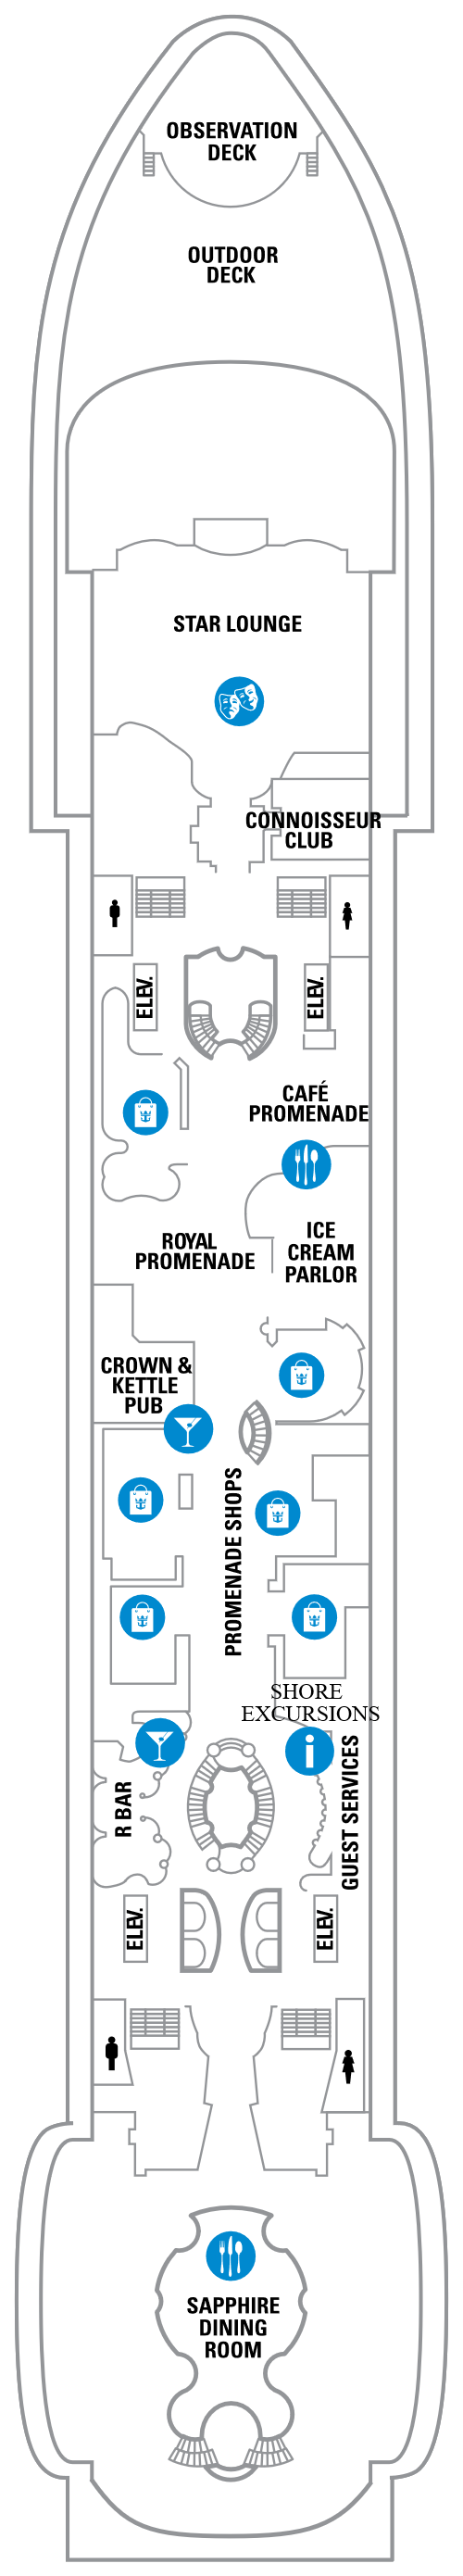 Explorer Of The Seas Deck 5 layout